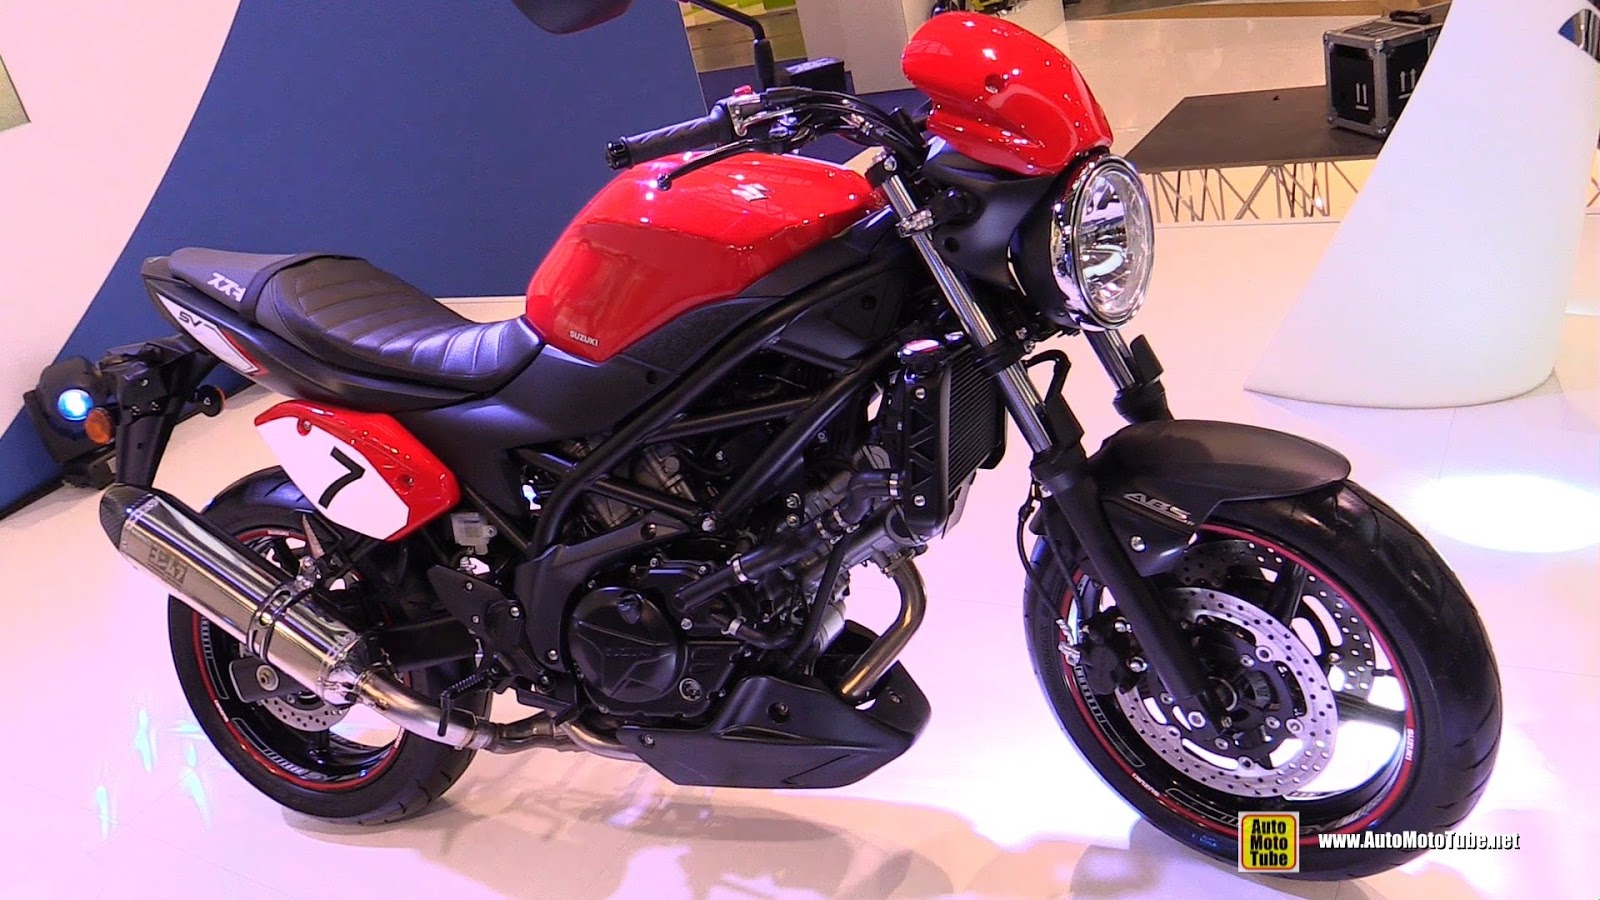 2017 suzuki sv650 naked review news motobikes news motobikes. Black Bedroom Furniture Sets. Home Design Ideas